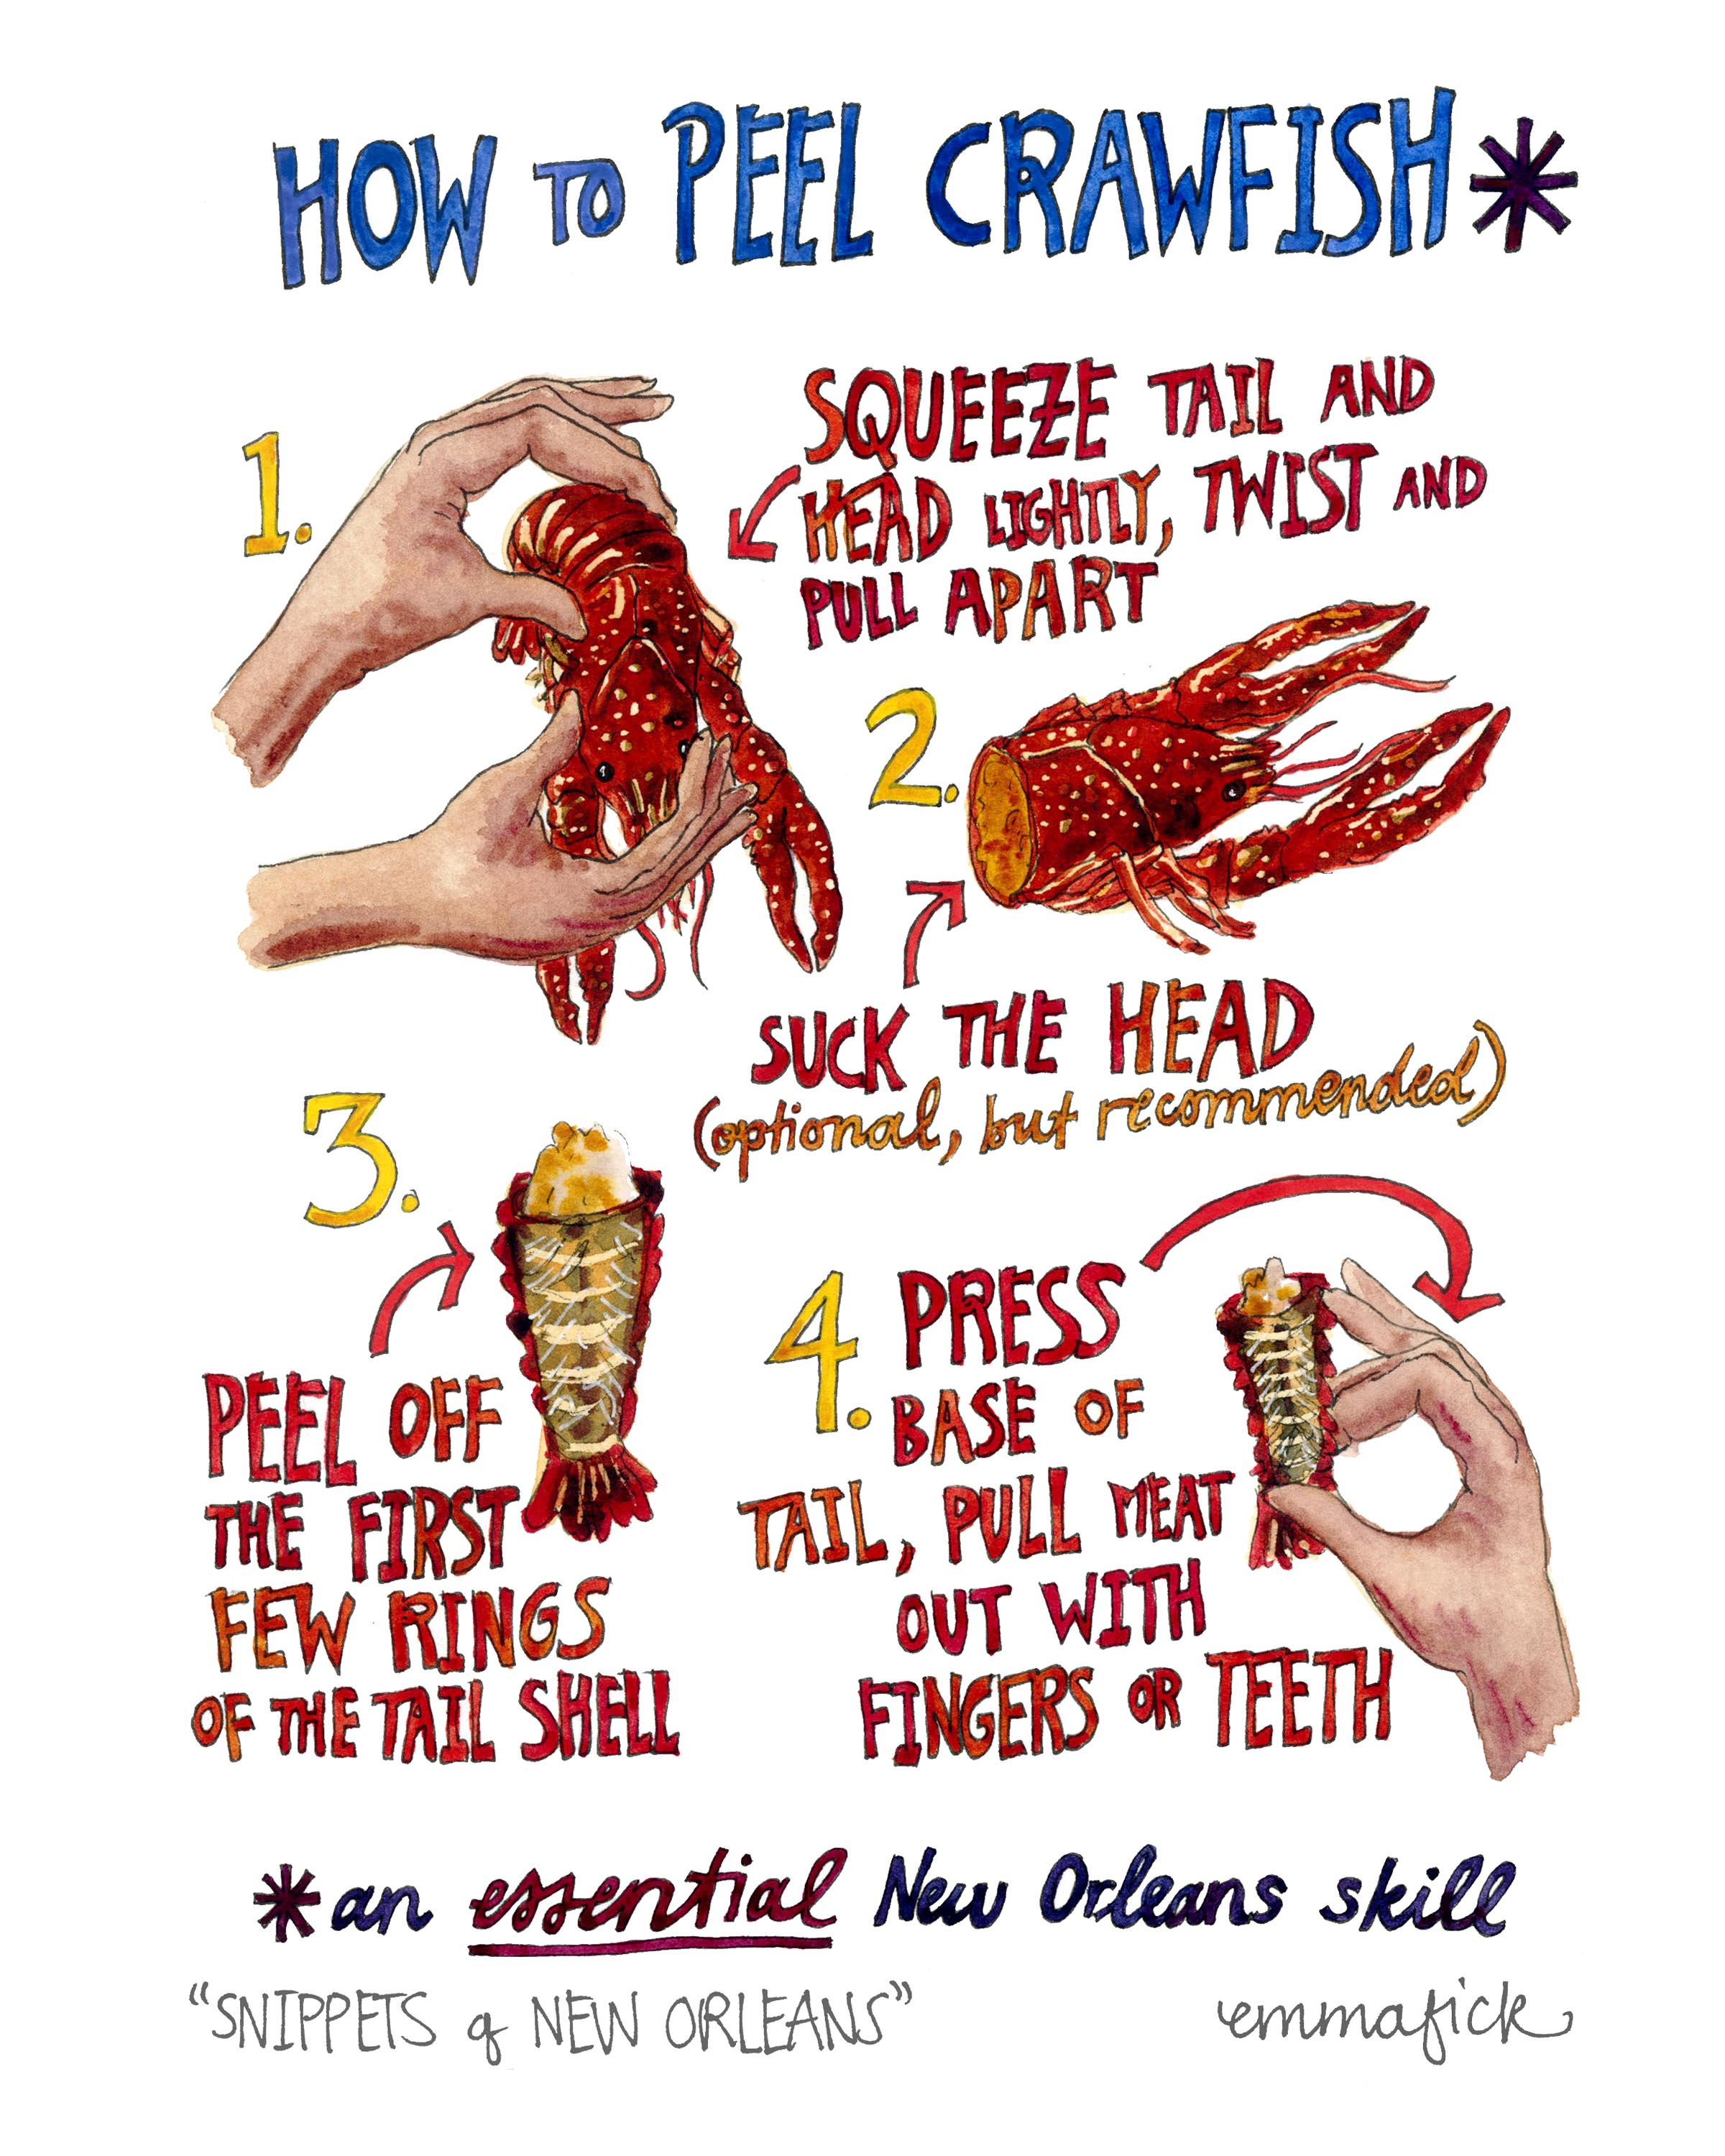 how to peel crawfish signed.jpg